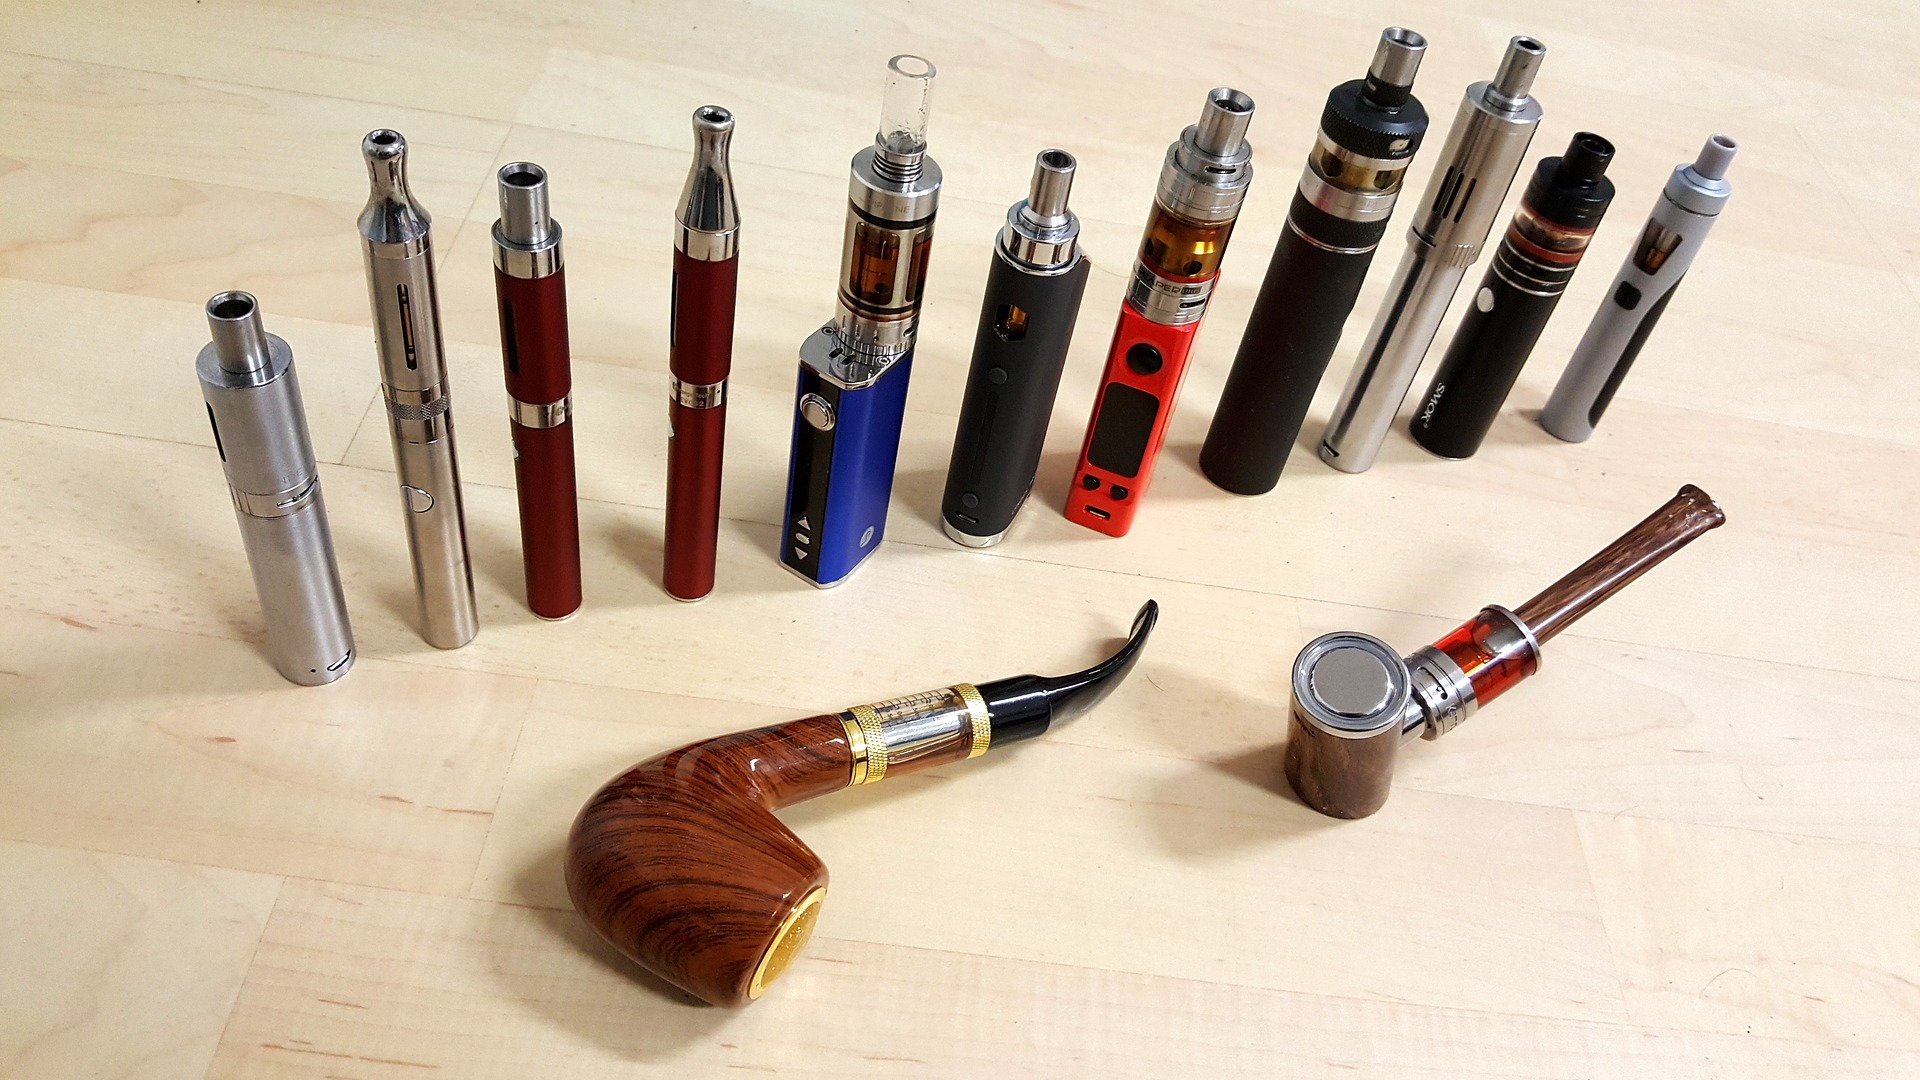 e cigarette collection 3159700 1920 - 【TIPS】ヴェポライザー必須のアイテム!見逃してはいけないヴェポライザーグッズ